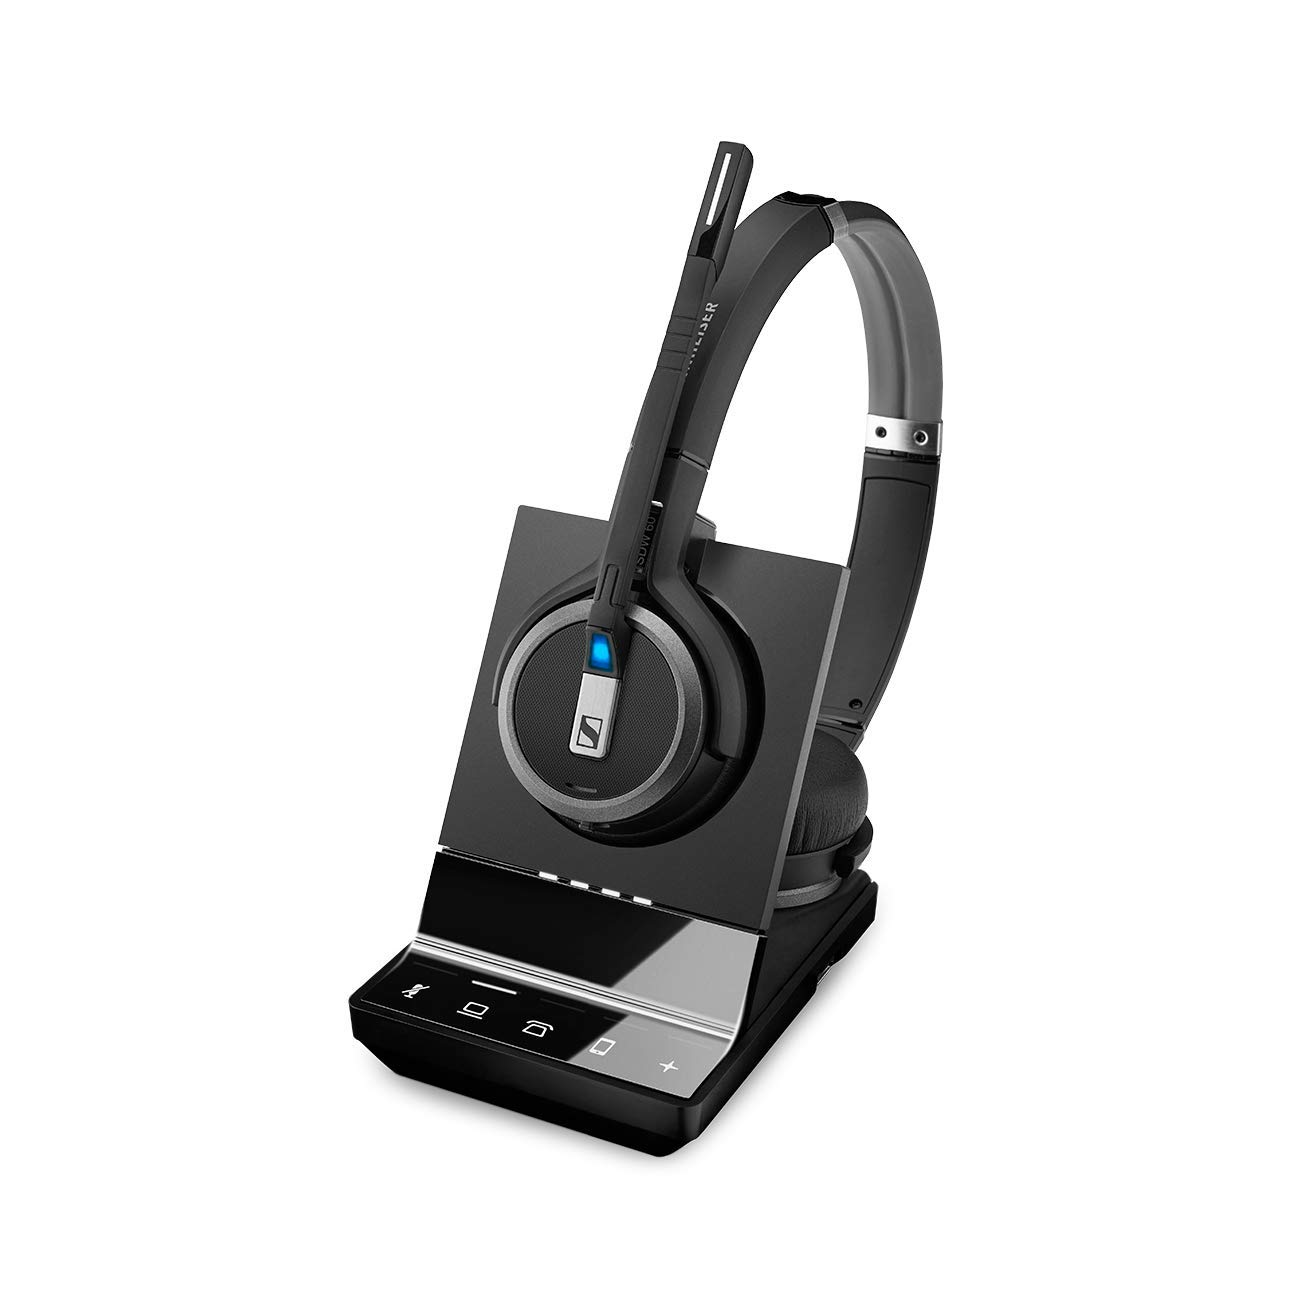 Sennheiser SDW 5066 Binaural Triple Connect Wireless Headset